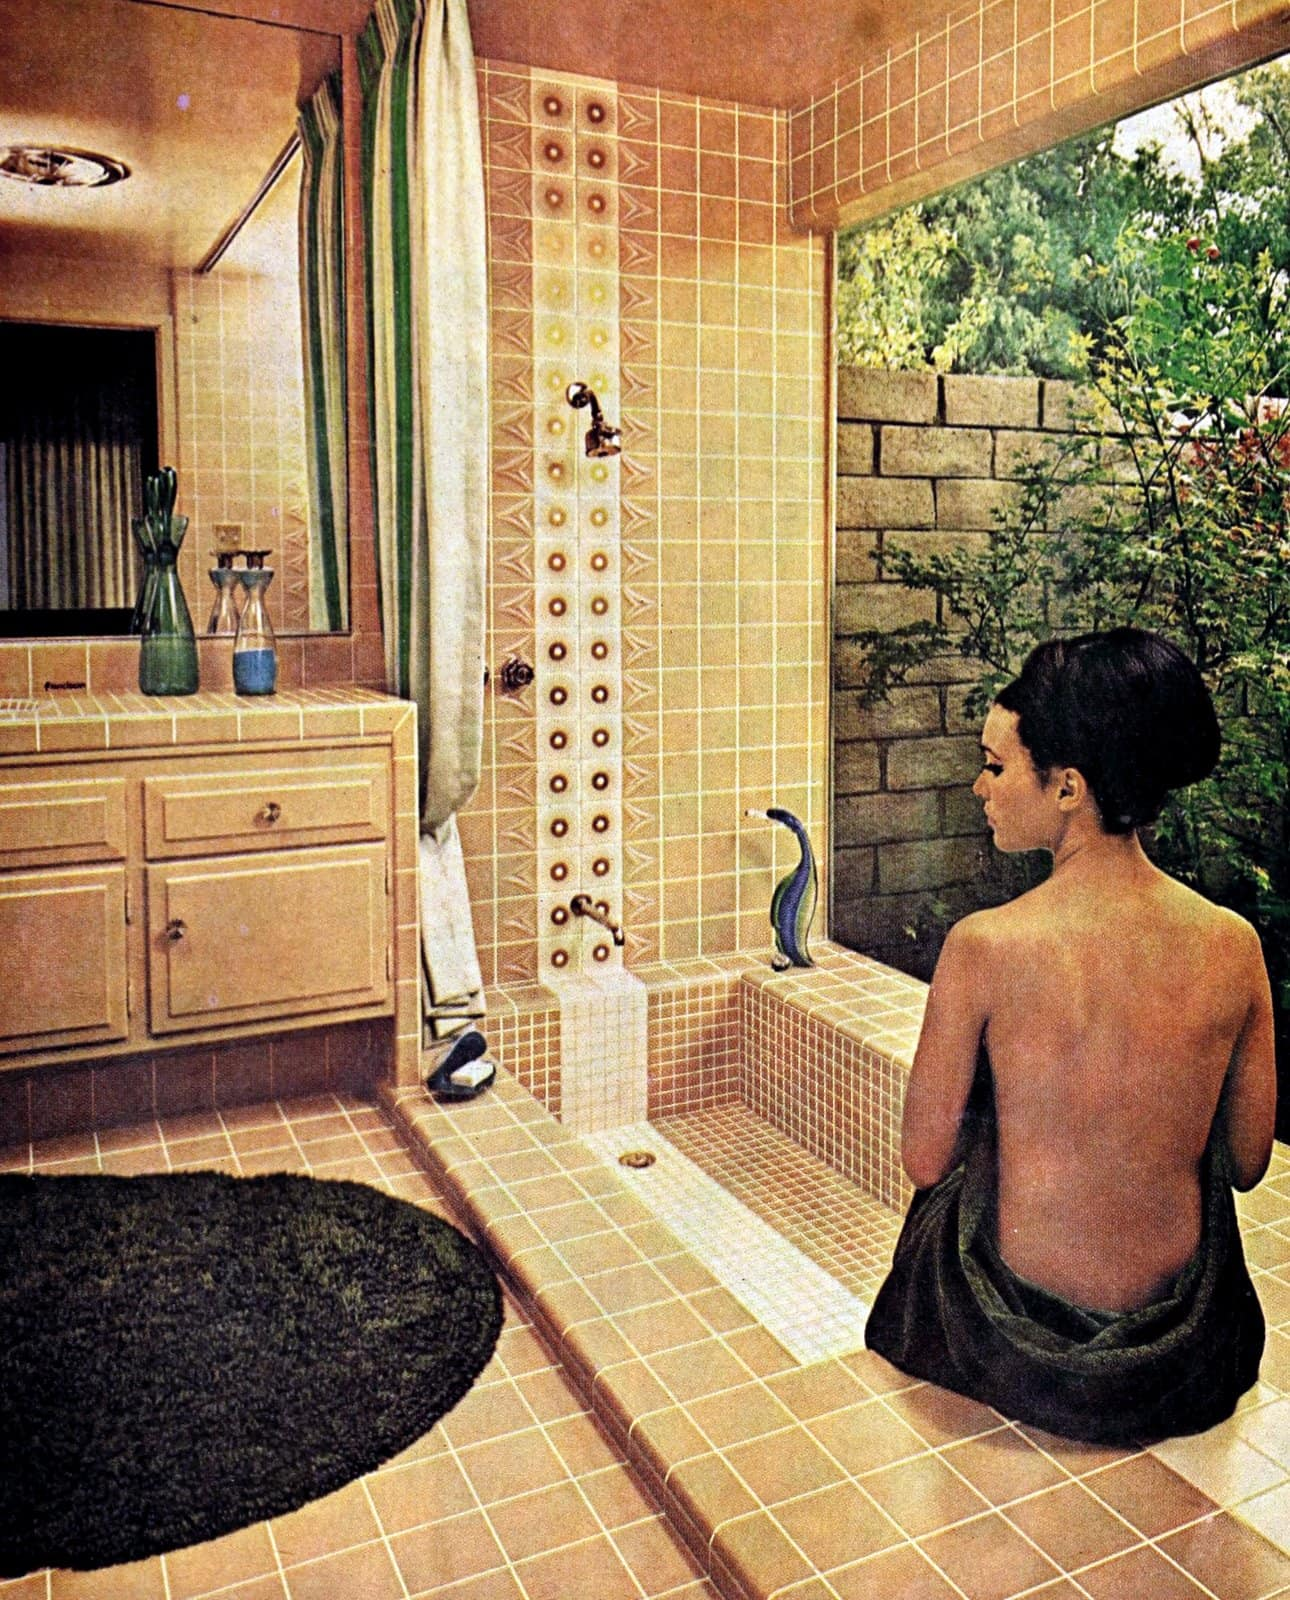 Beige-brown vintage bathroom with accent tiles and sunken tub (1964)